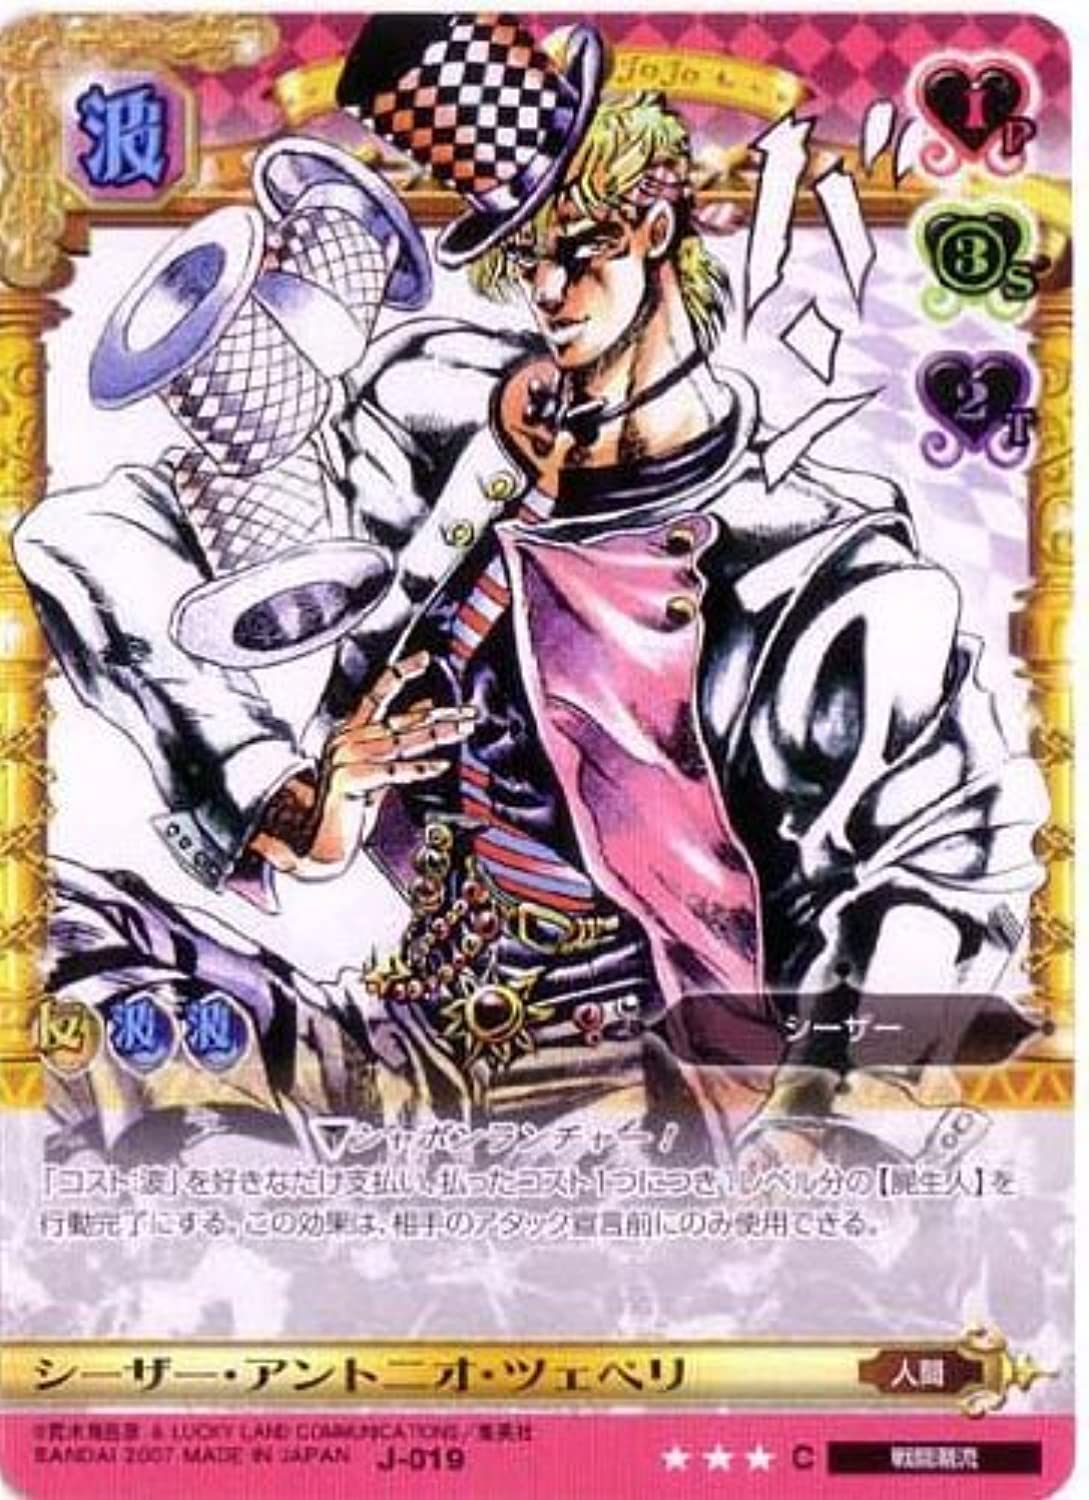 1 ABC series JoJo's Bizarre Adventure [common]  character card  J019 Caesar Antonio Zeppeli (Japan import   The package and the manual are written in Japanese)